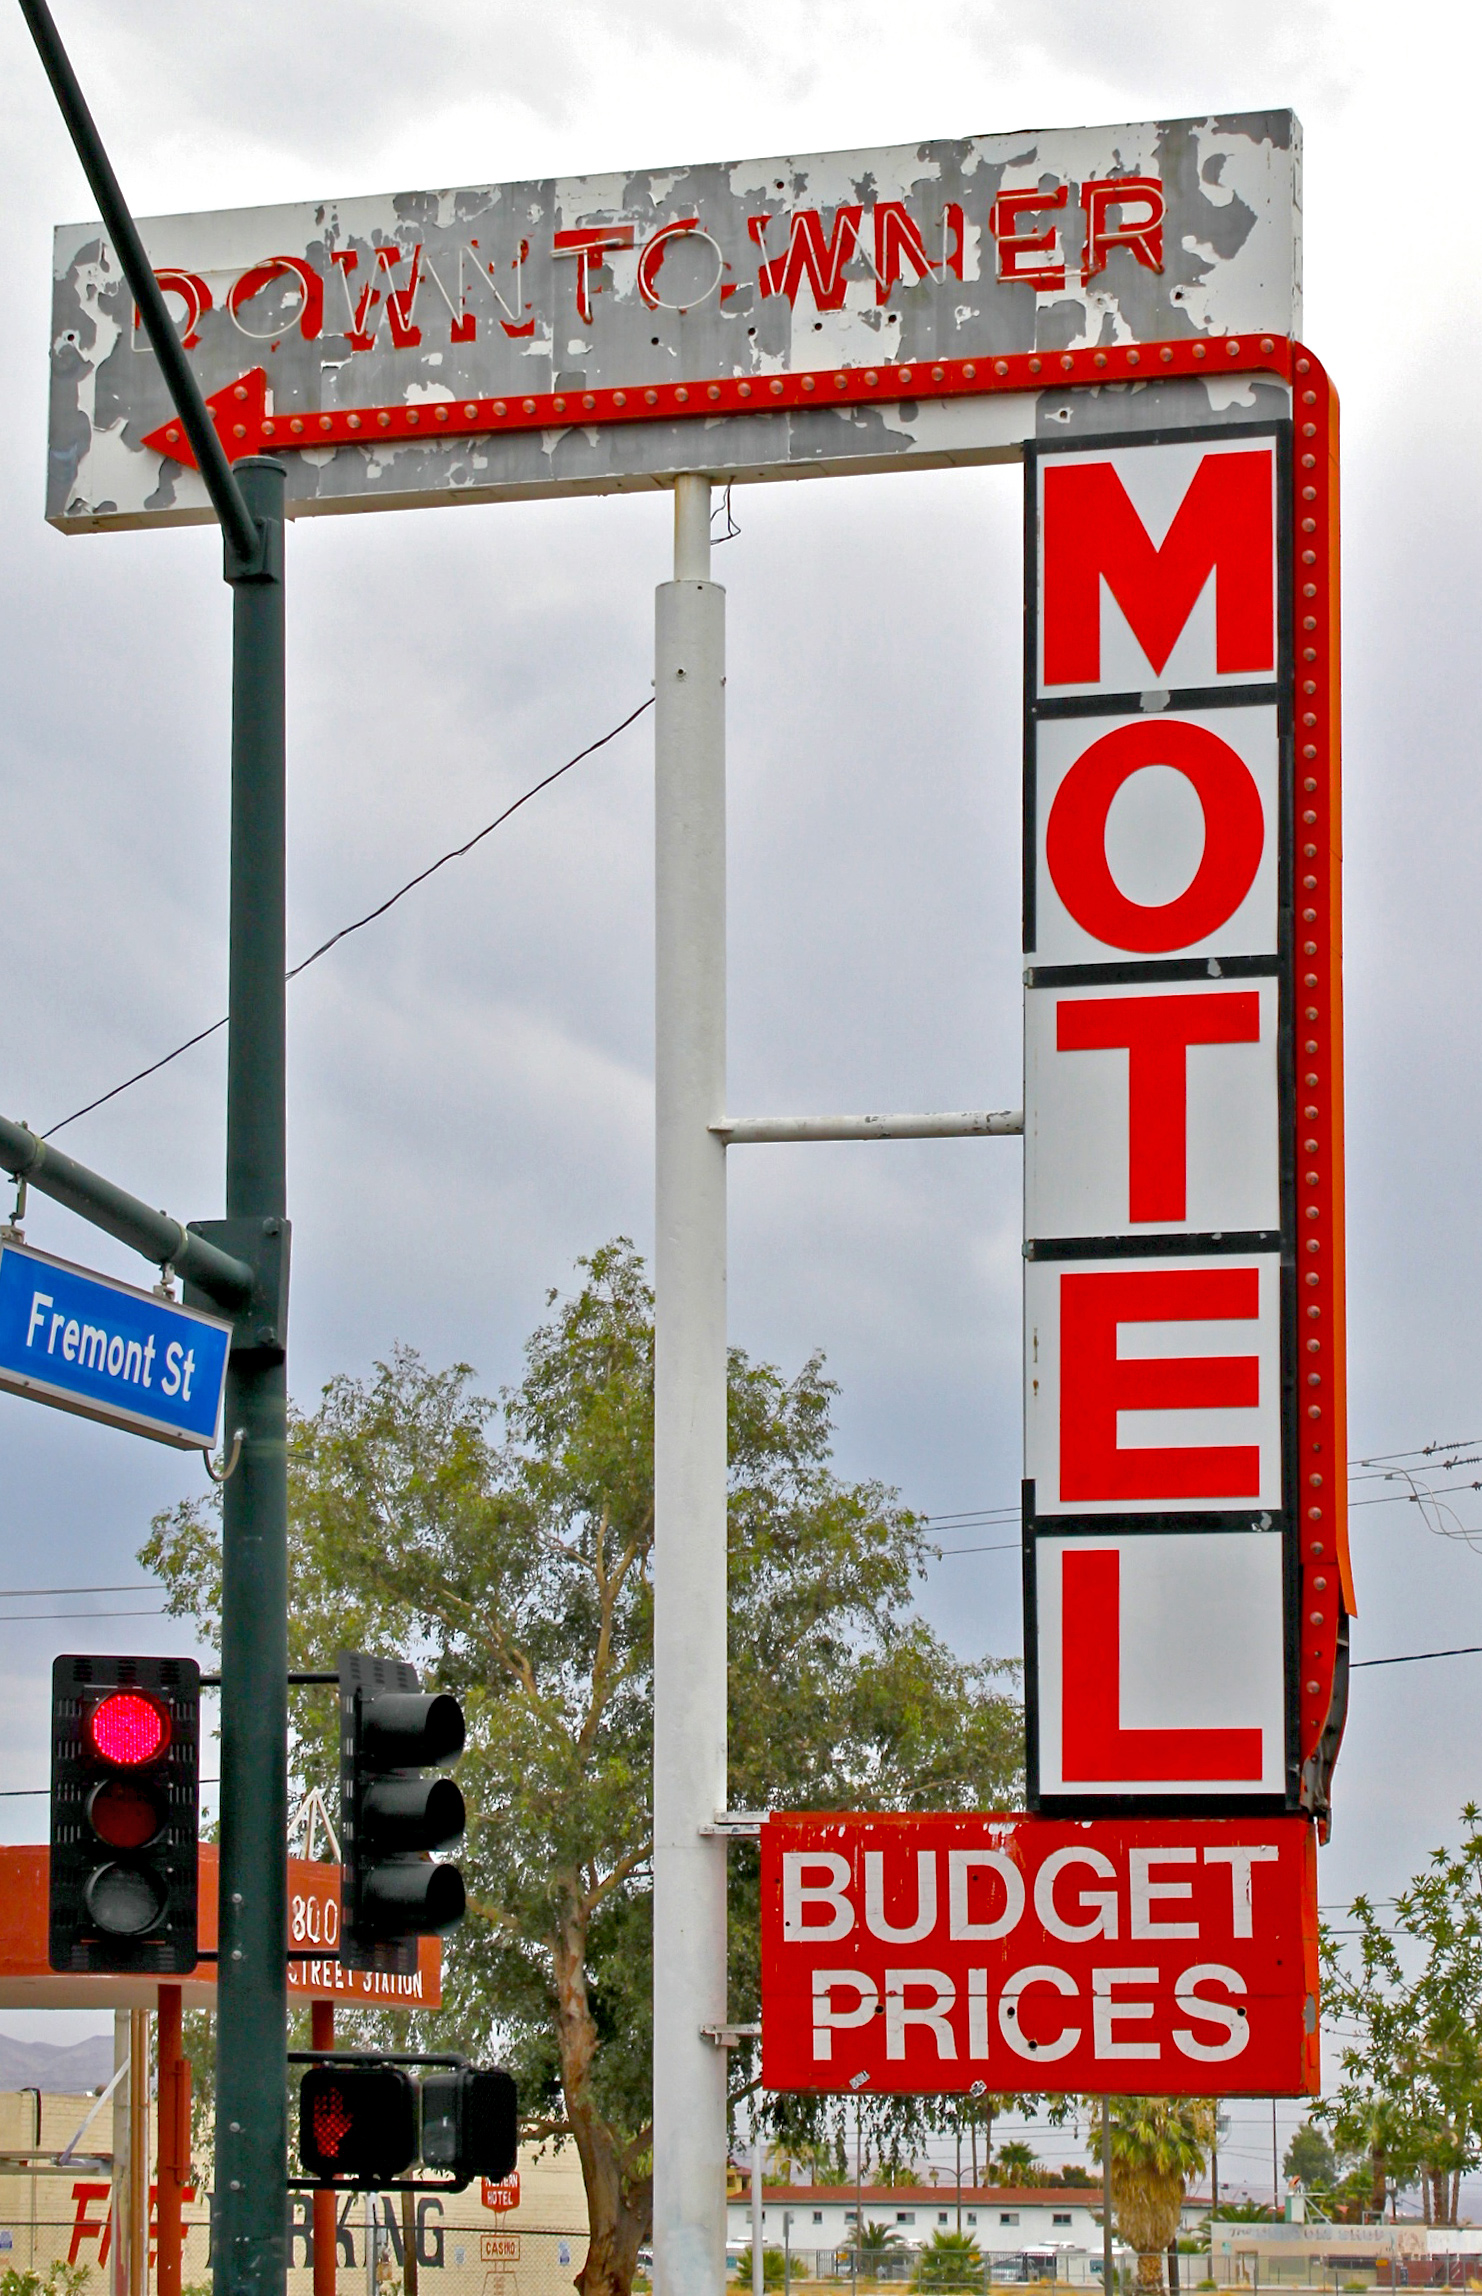 Daily Neon Faded Downtowner Motel Neon Sign Las Vegas 360